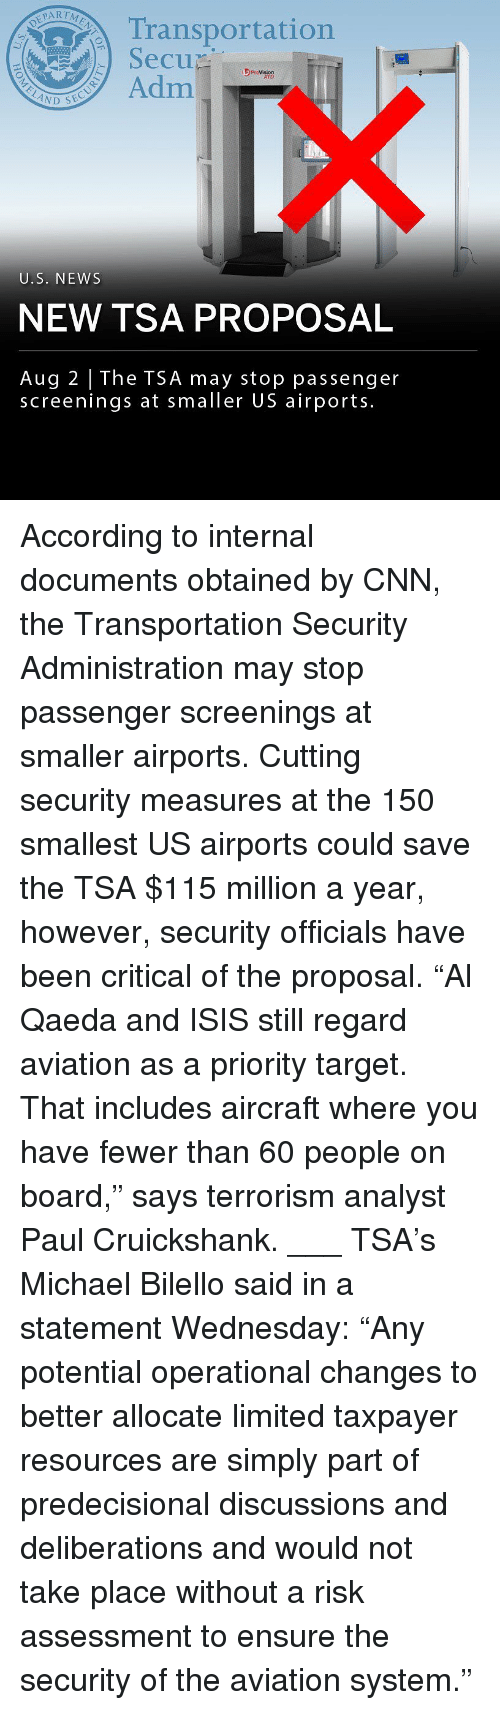 "adm: Transportation  SecuD  se  3 ProVision  ATD  Adm  U.S. NEWS  NEW TSA PROPOSAL  Aug 2 The TSA may stop passenger  screenings at smaller US airports. According to internal documents obtained by CNN, the Transportation Security Administration may stop passenger screenings at smaller airports. Cutting security measures at the 150 smallest US airports could save the TSA $115 million a year, however, security officials have been critical of the proposal. ""Al Qaeda and ISIS still regard aviation as a priority target. That includes aircraft where you have fewer than 60 people on board,"" says terrorism analyst Paul Cruickshank. ___ TSA's Michael Bilello said in a statement Wednesday: ""Any potential operational changes to better allocate limited taxpayer resources are simply part of predecisional discussions and deliberations and would not take place without a risk assessment to ensure the security of the aviation system."""